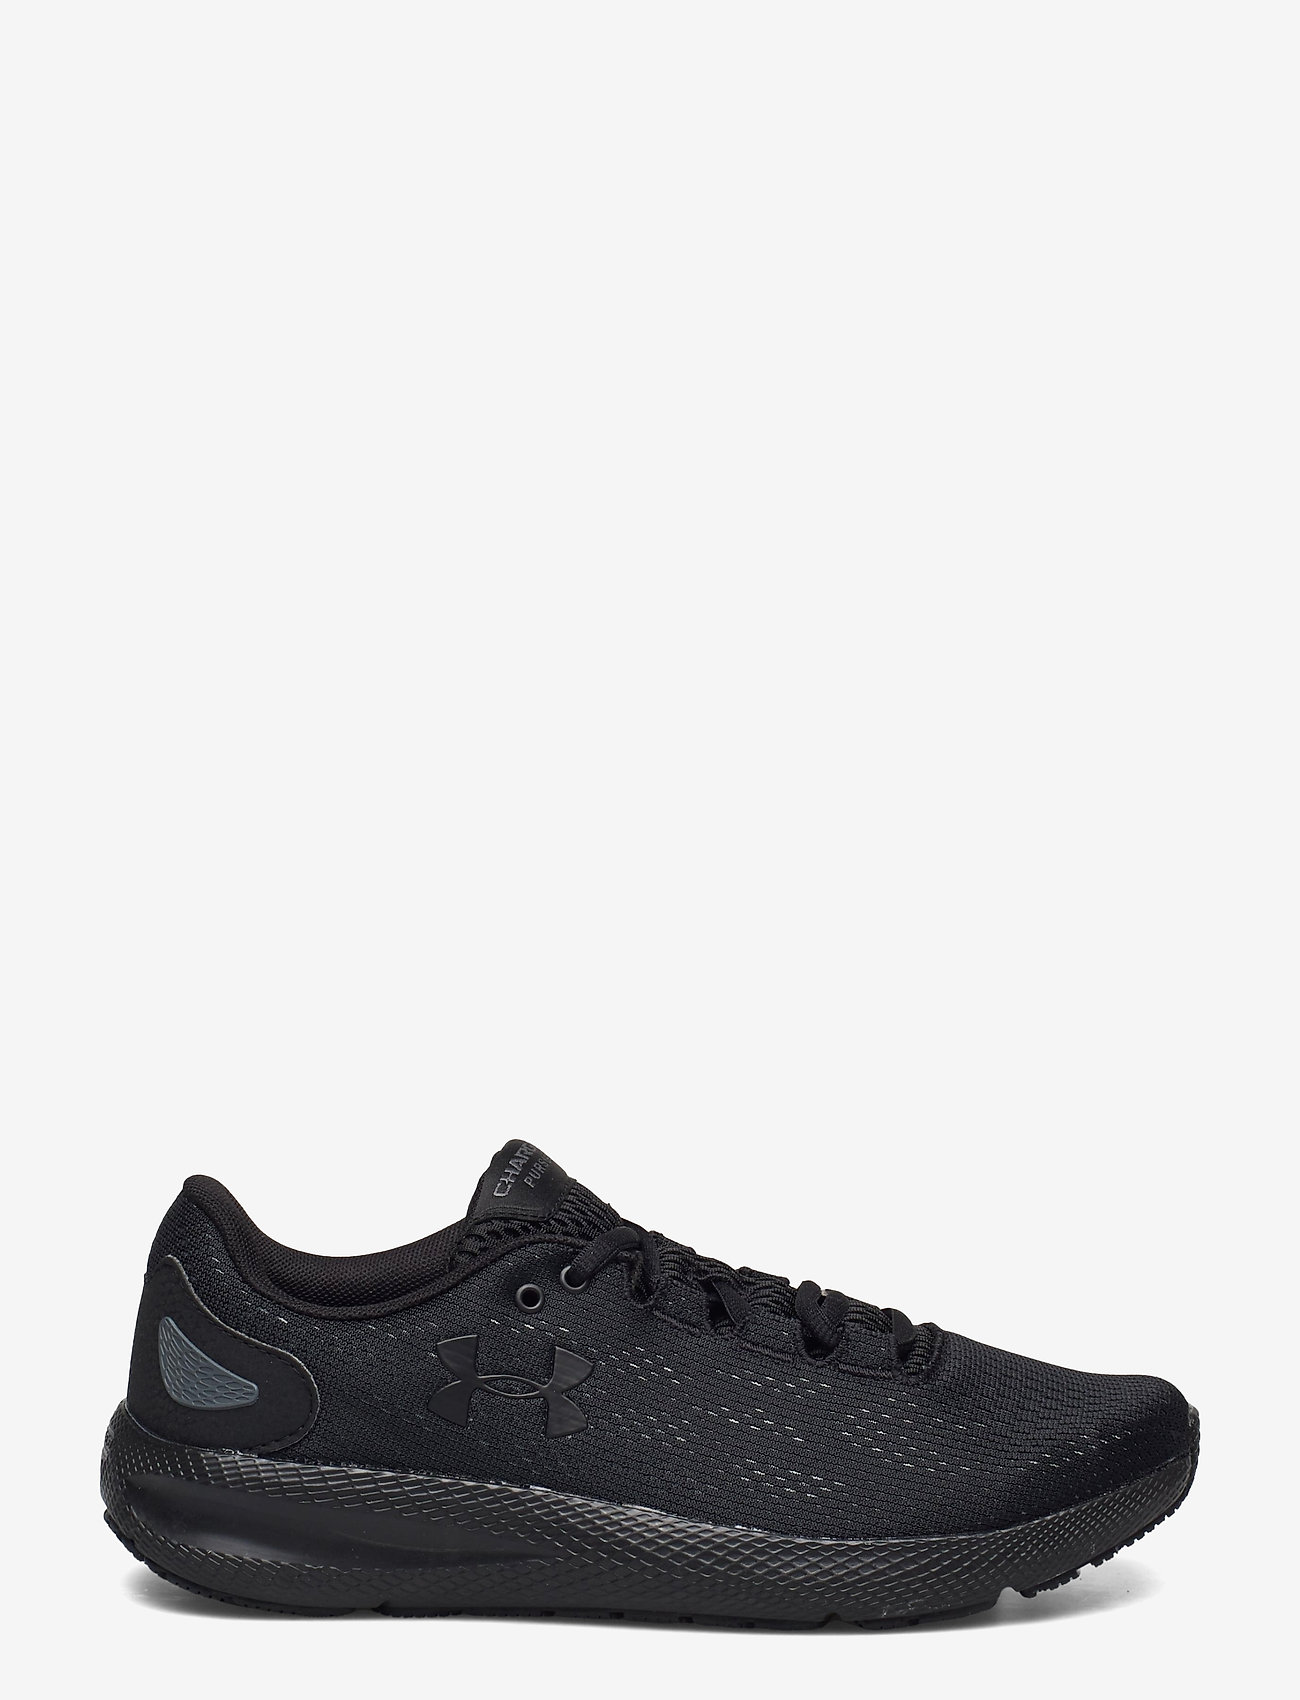 Under Armour - UA W Charged Pursuit 2 - running shoes - black - 1